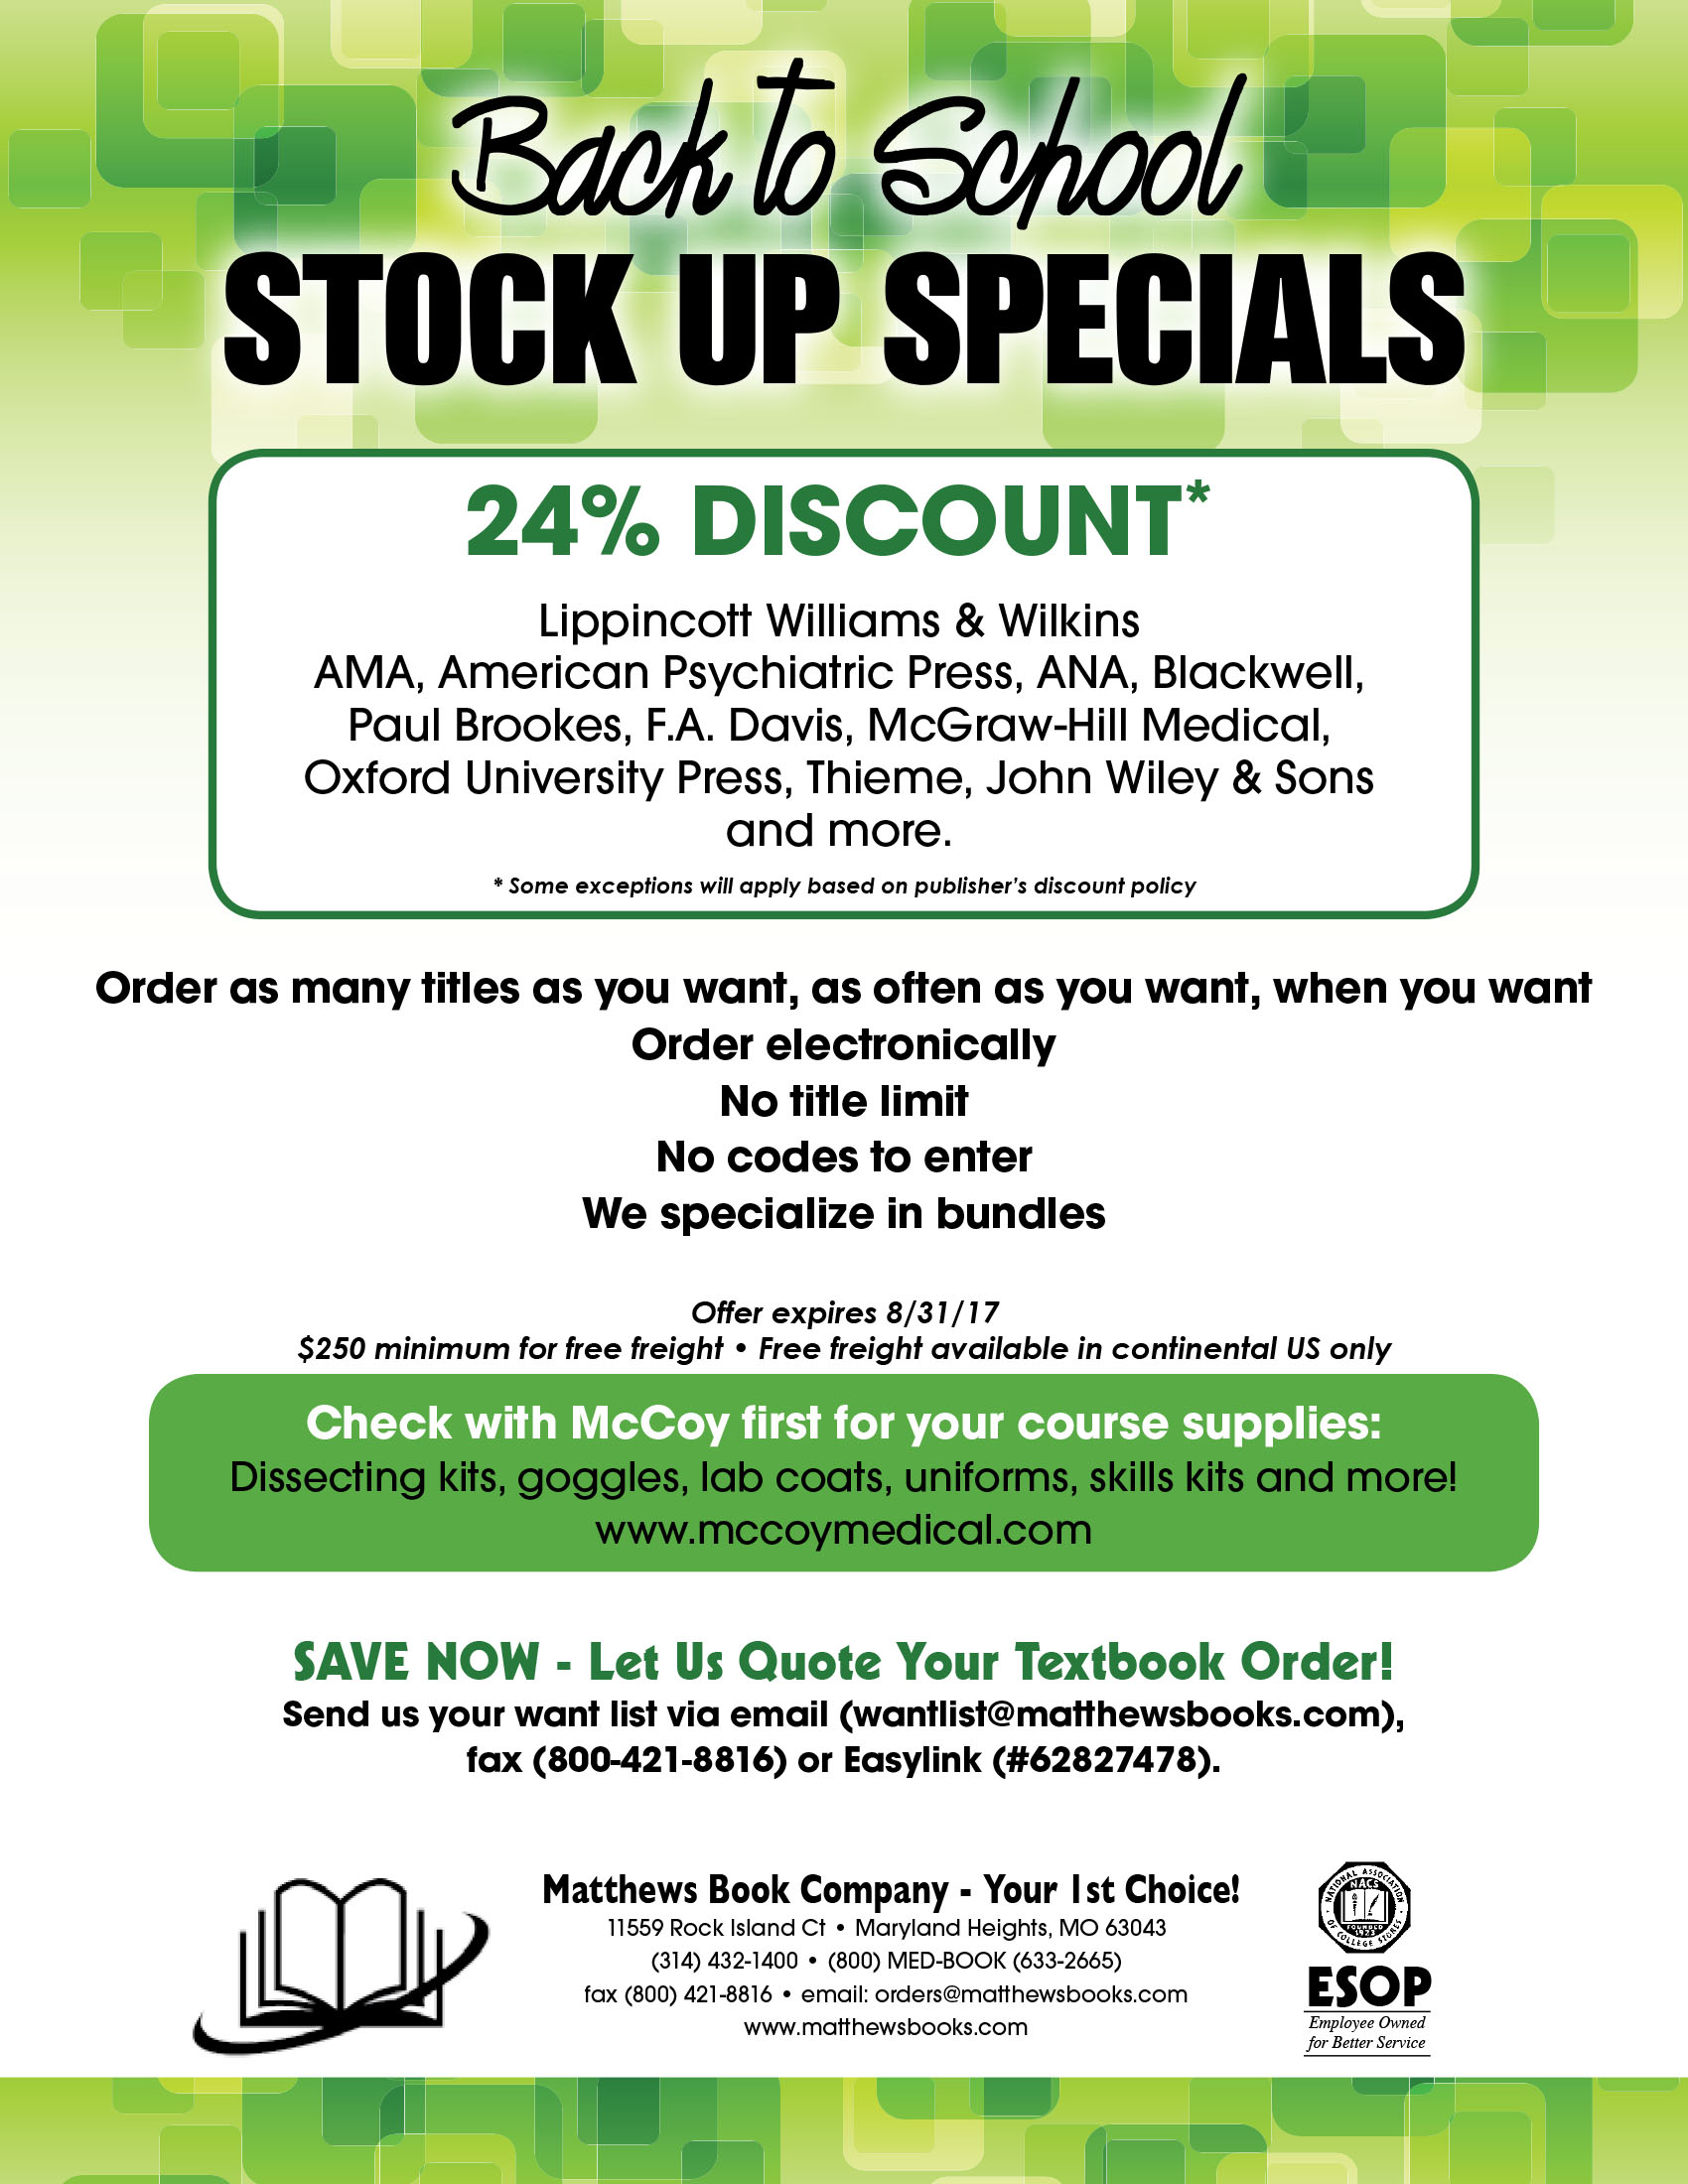 Back to School Stock Up Specials